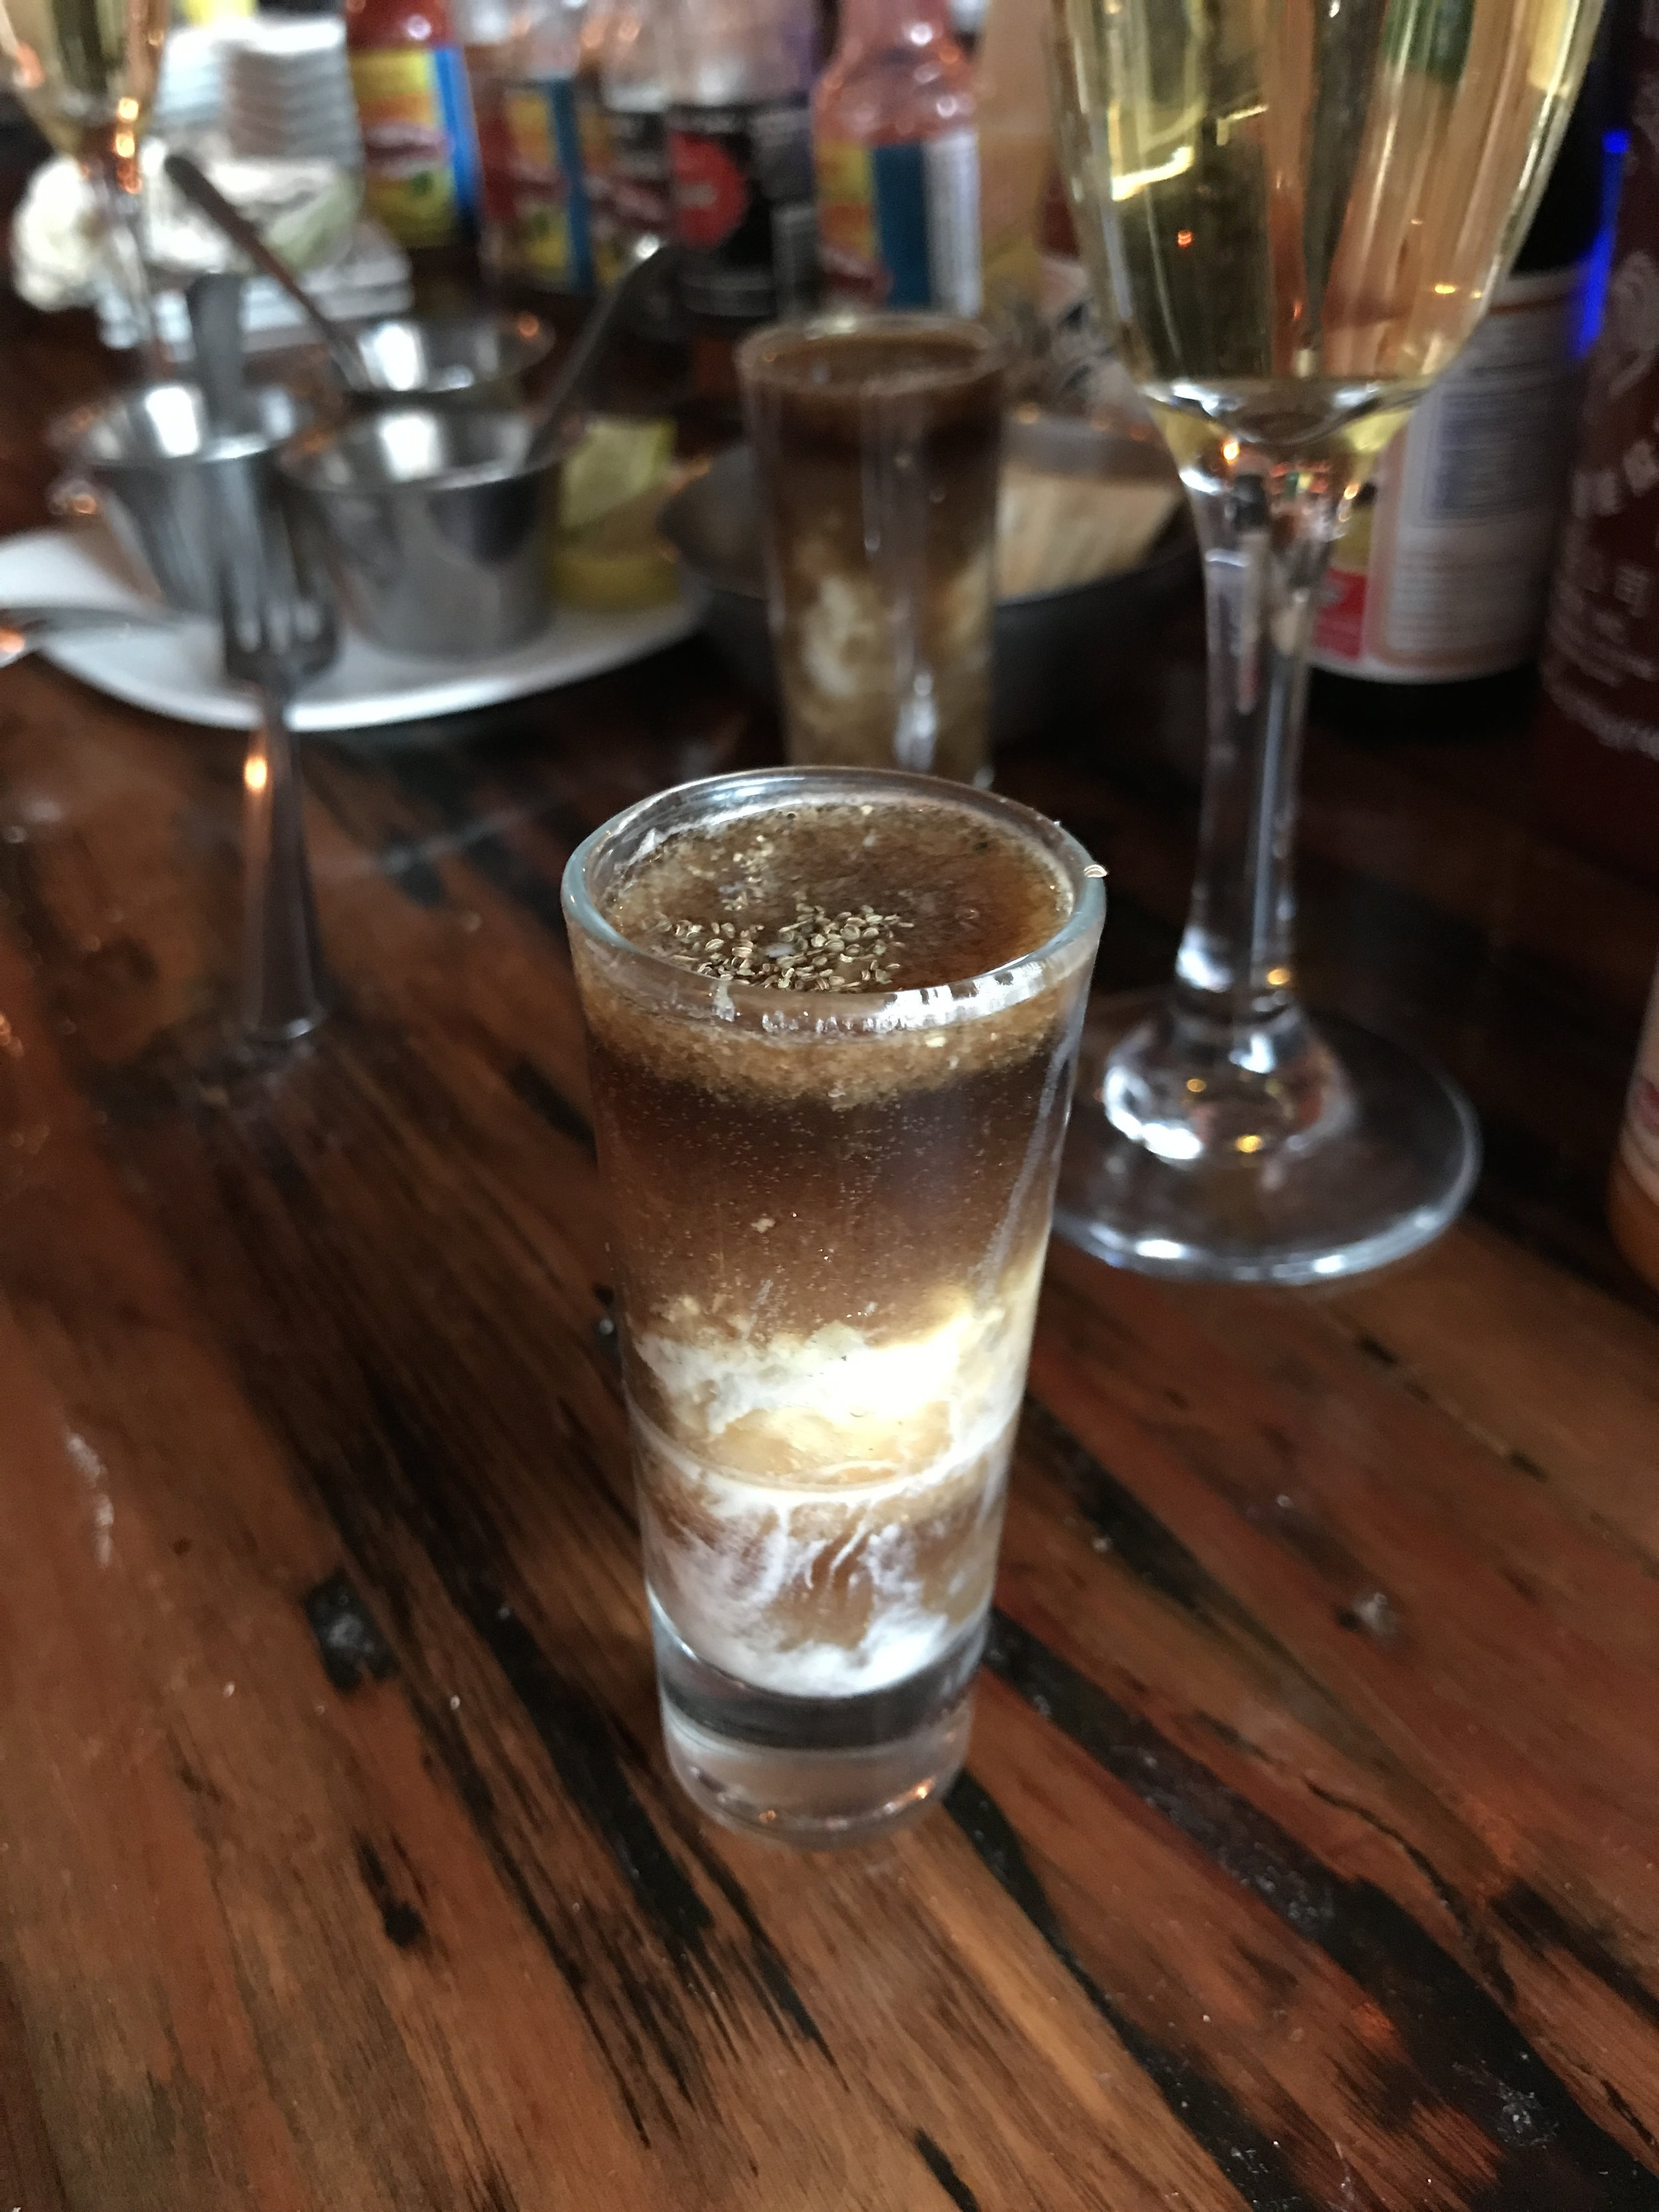 We also had a few oyster shooters, SO yummy. This one was our favorite even though it was really unexpected--a raw oyster, Stout, Worcestershire Sauce, and mignonette. Amazing!